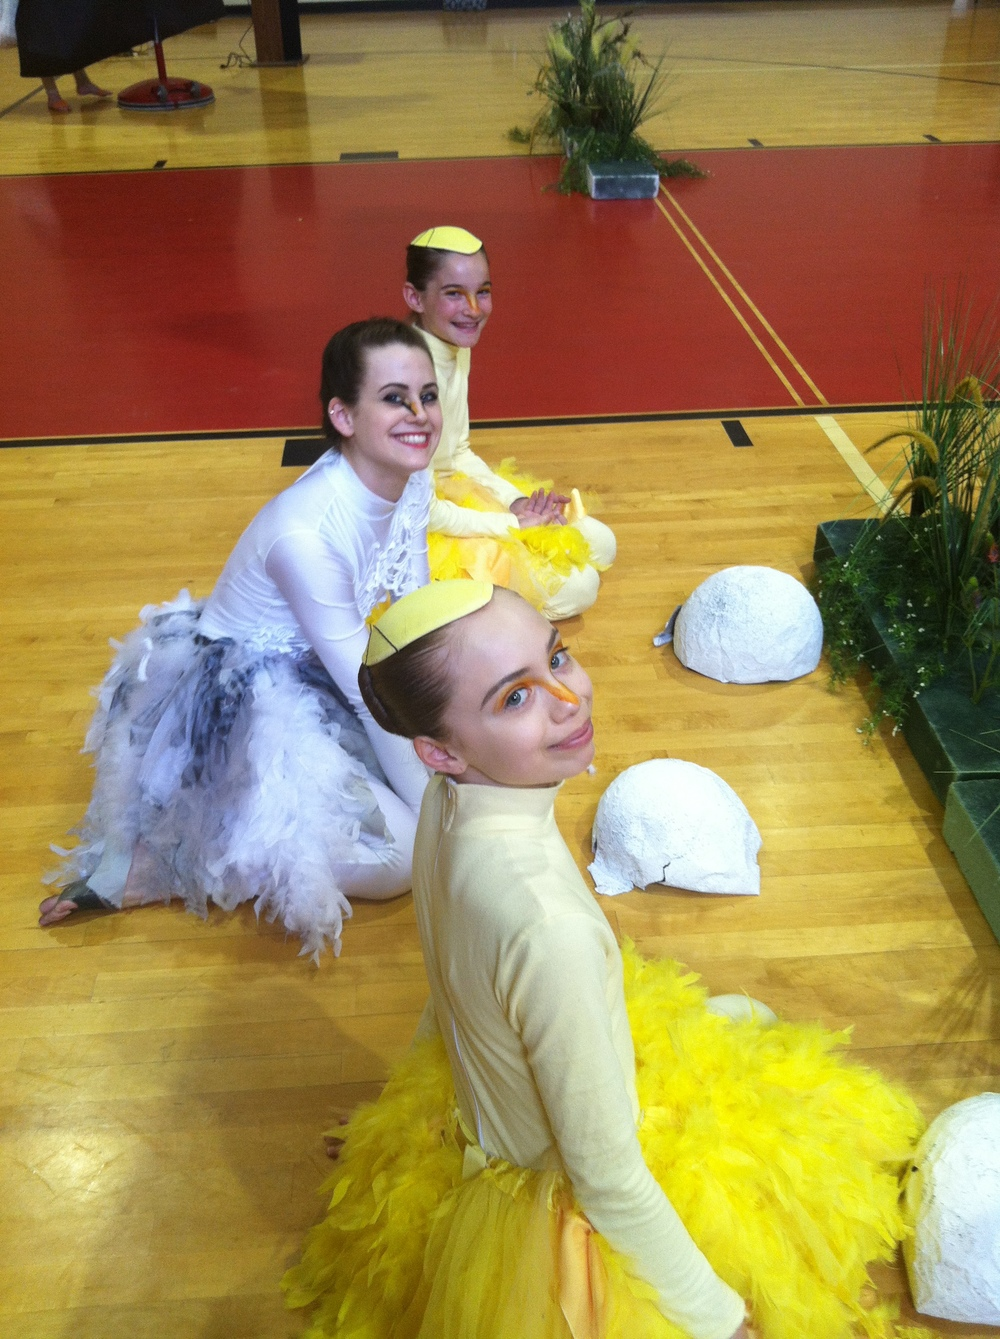 Pennsylvania Regional Ballet dancers waiting to begin an Ugly Duckling performance